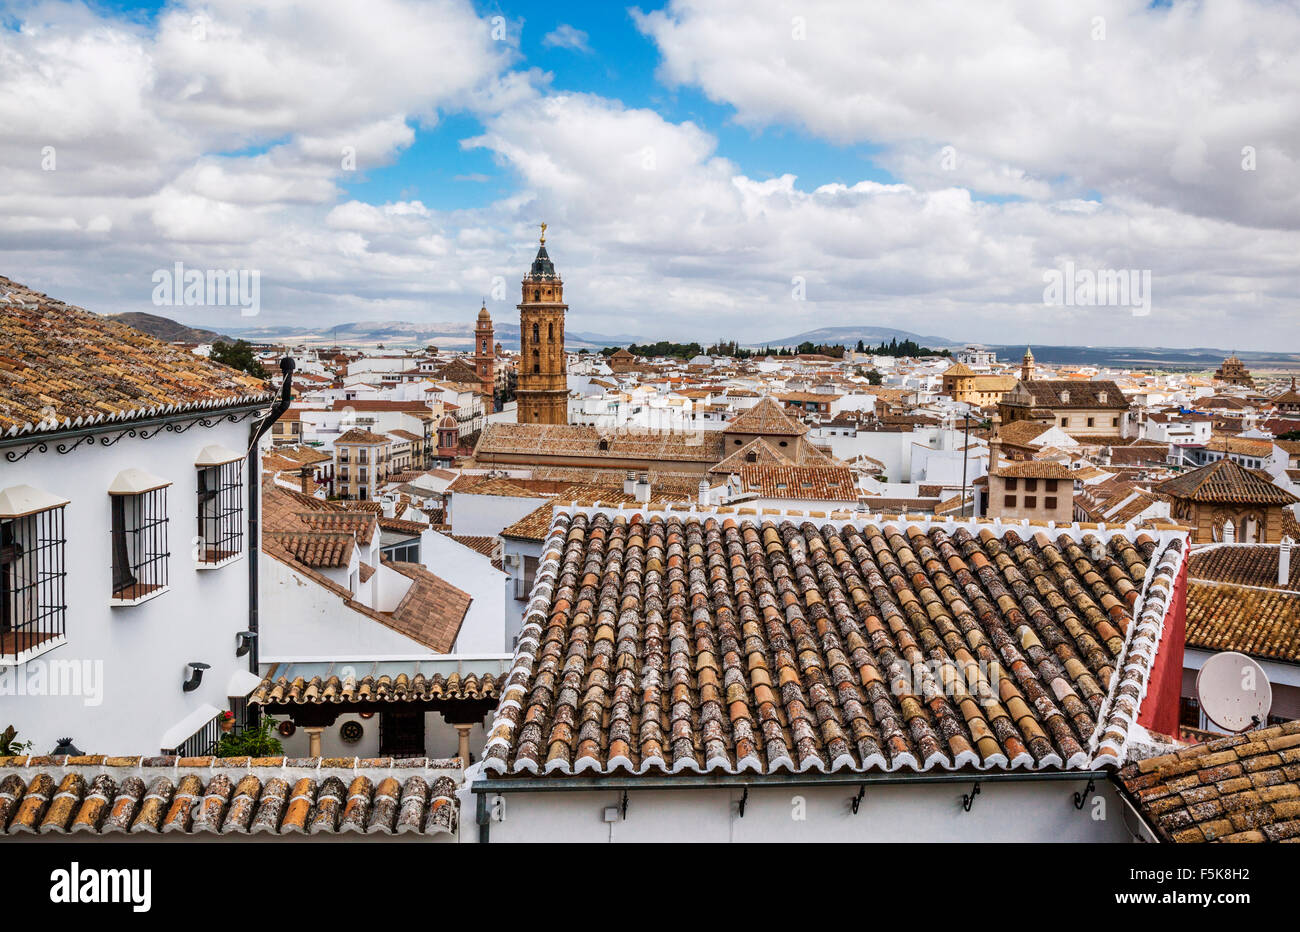 Spain, Andalusia, Province of Malaga, Antequera, view over the roofs of Antequera from the foot of the Alcazaba - Stock Image